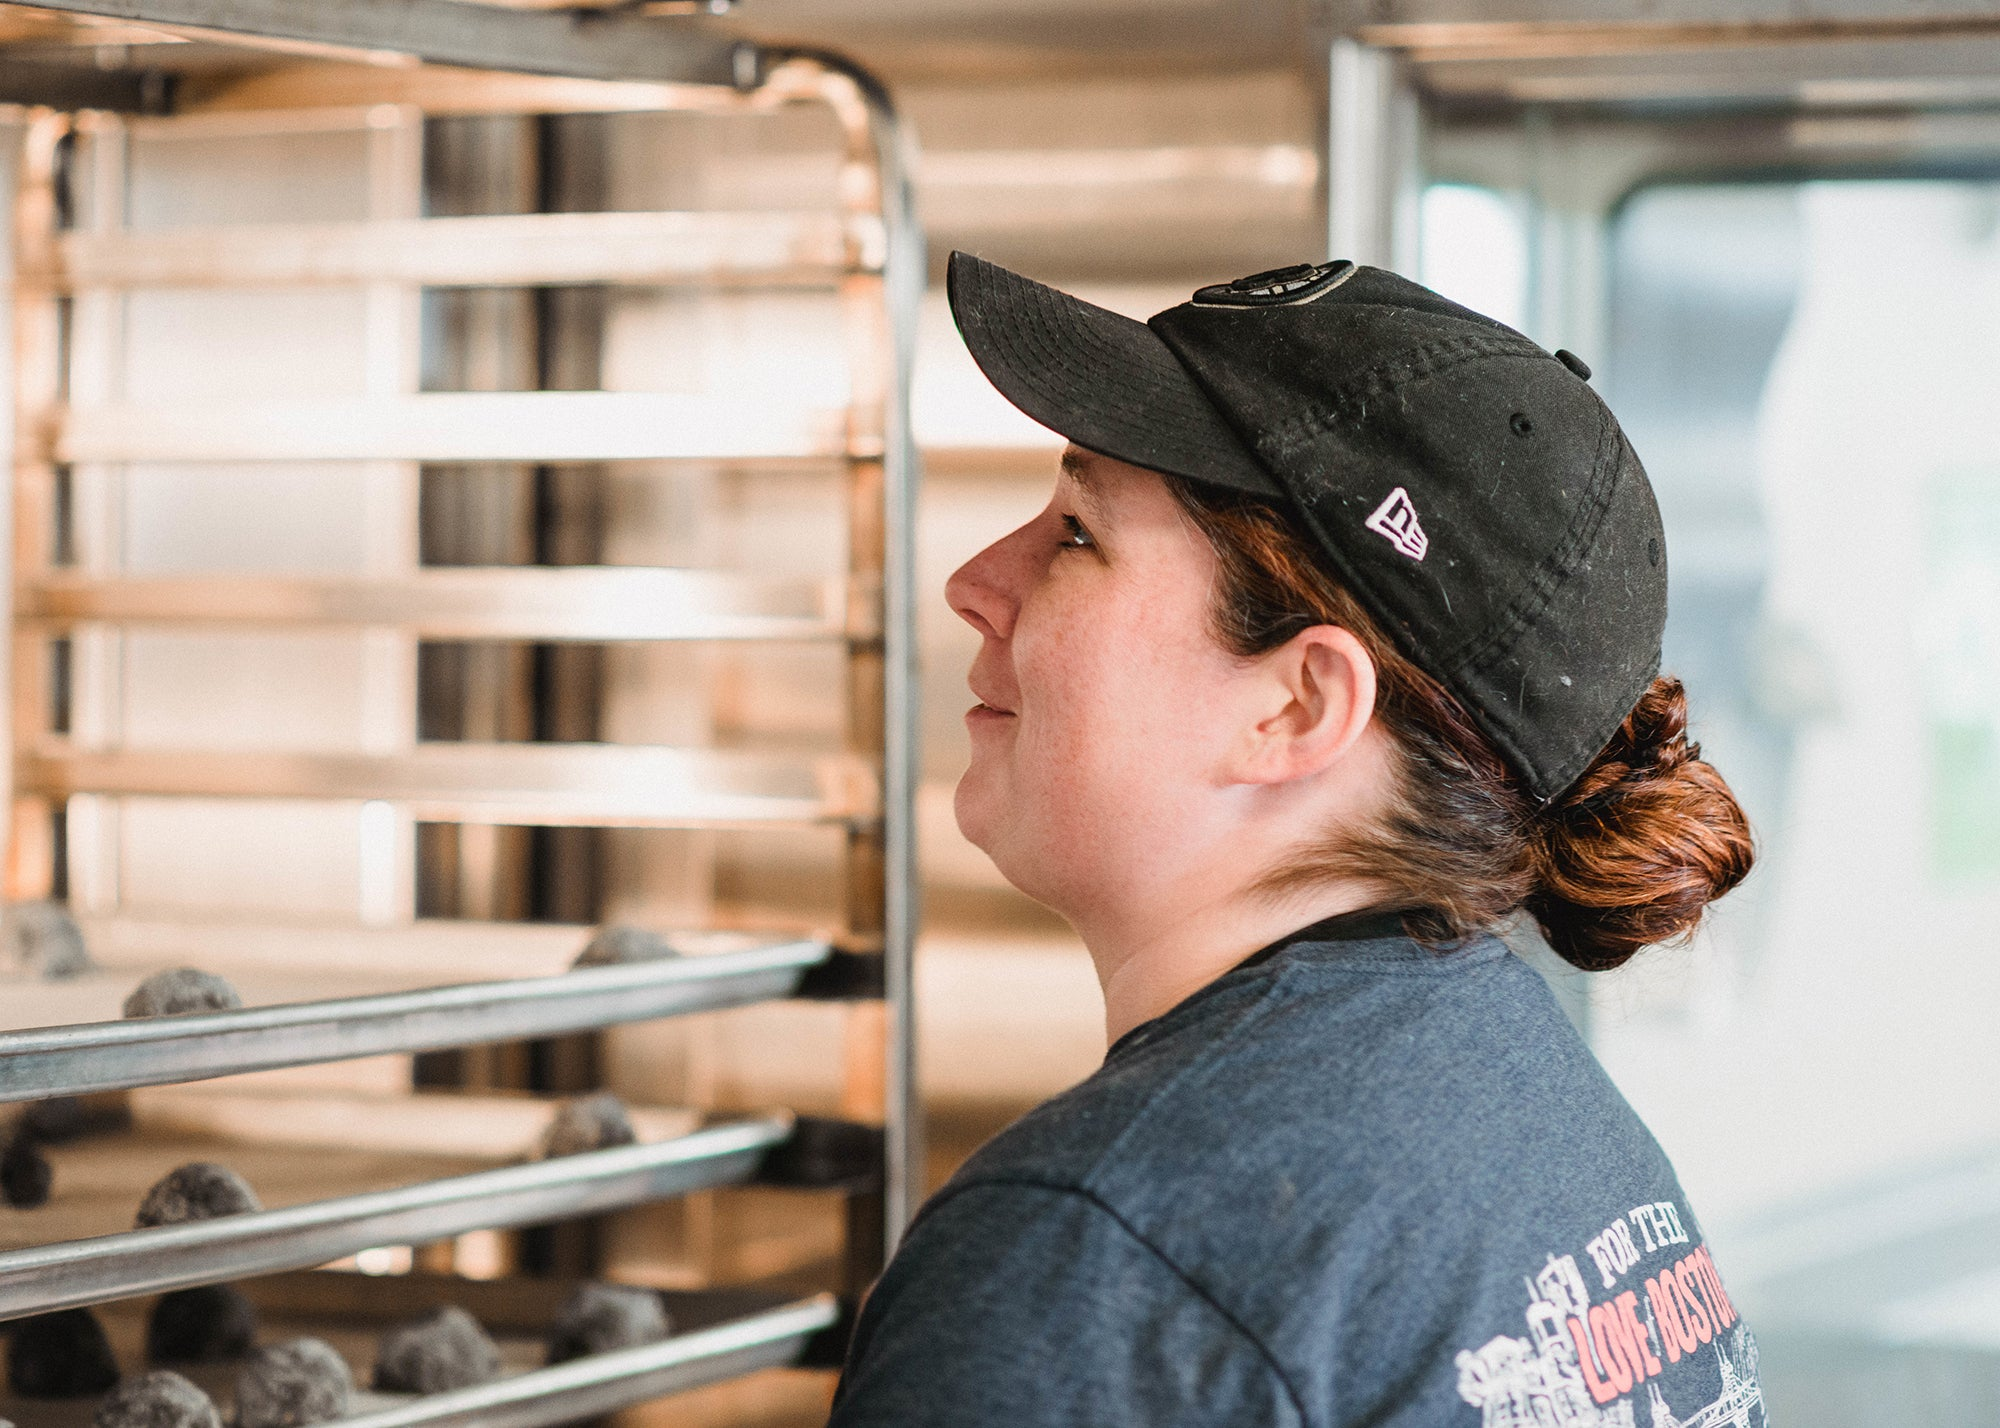 Heather Yunger, owner at Top Shelf Cookies